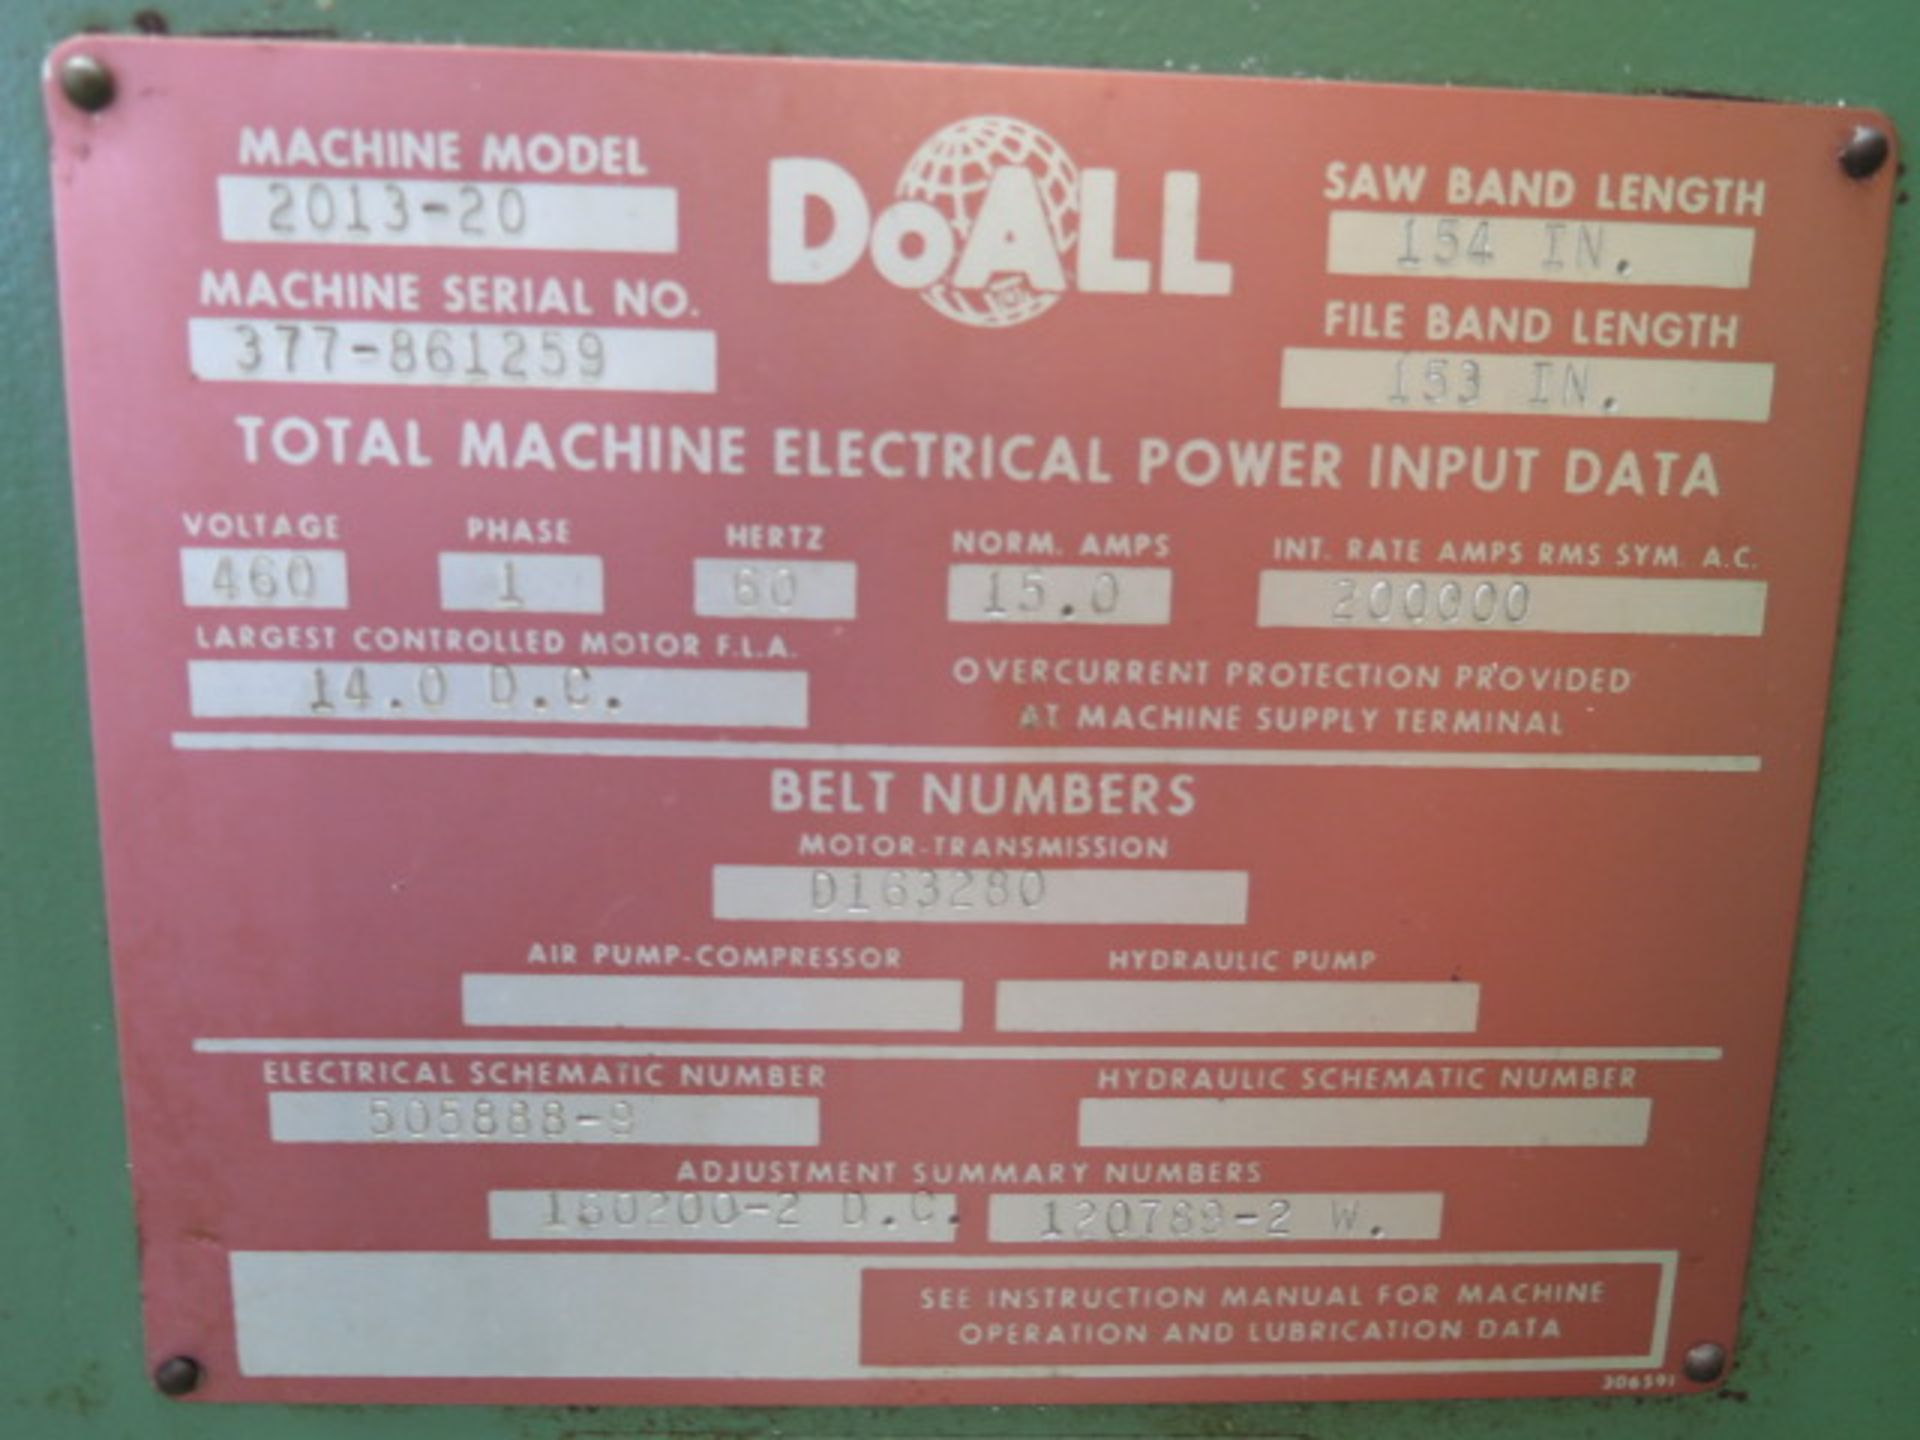 "DoAll 2013-10 20"" Vertical Band Saw s/n 377-861259 w/ Welder, 0-5200 RPM 26"" x 26"" Table, SOLD AS IS - Image 11 of 11"